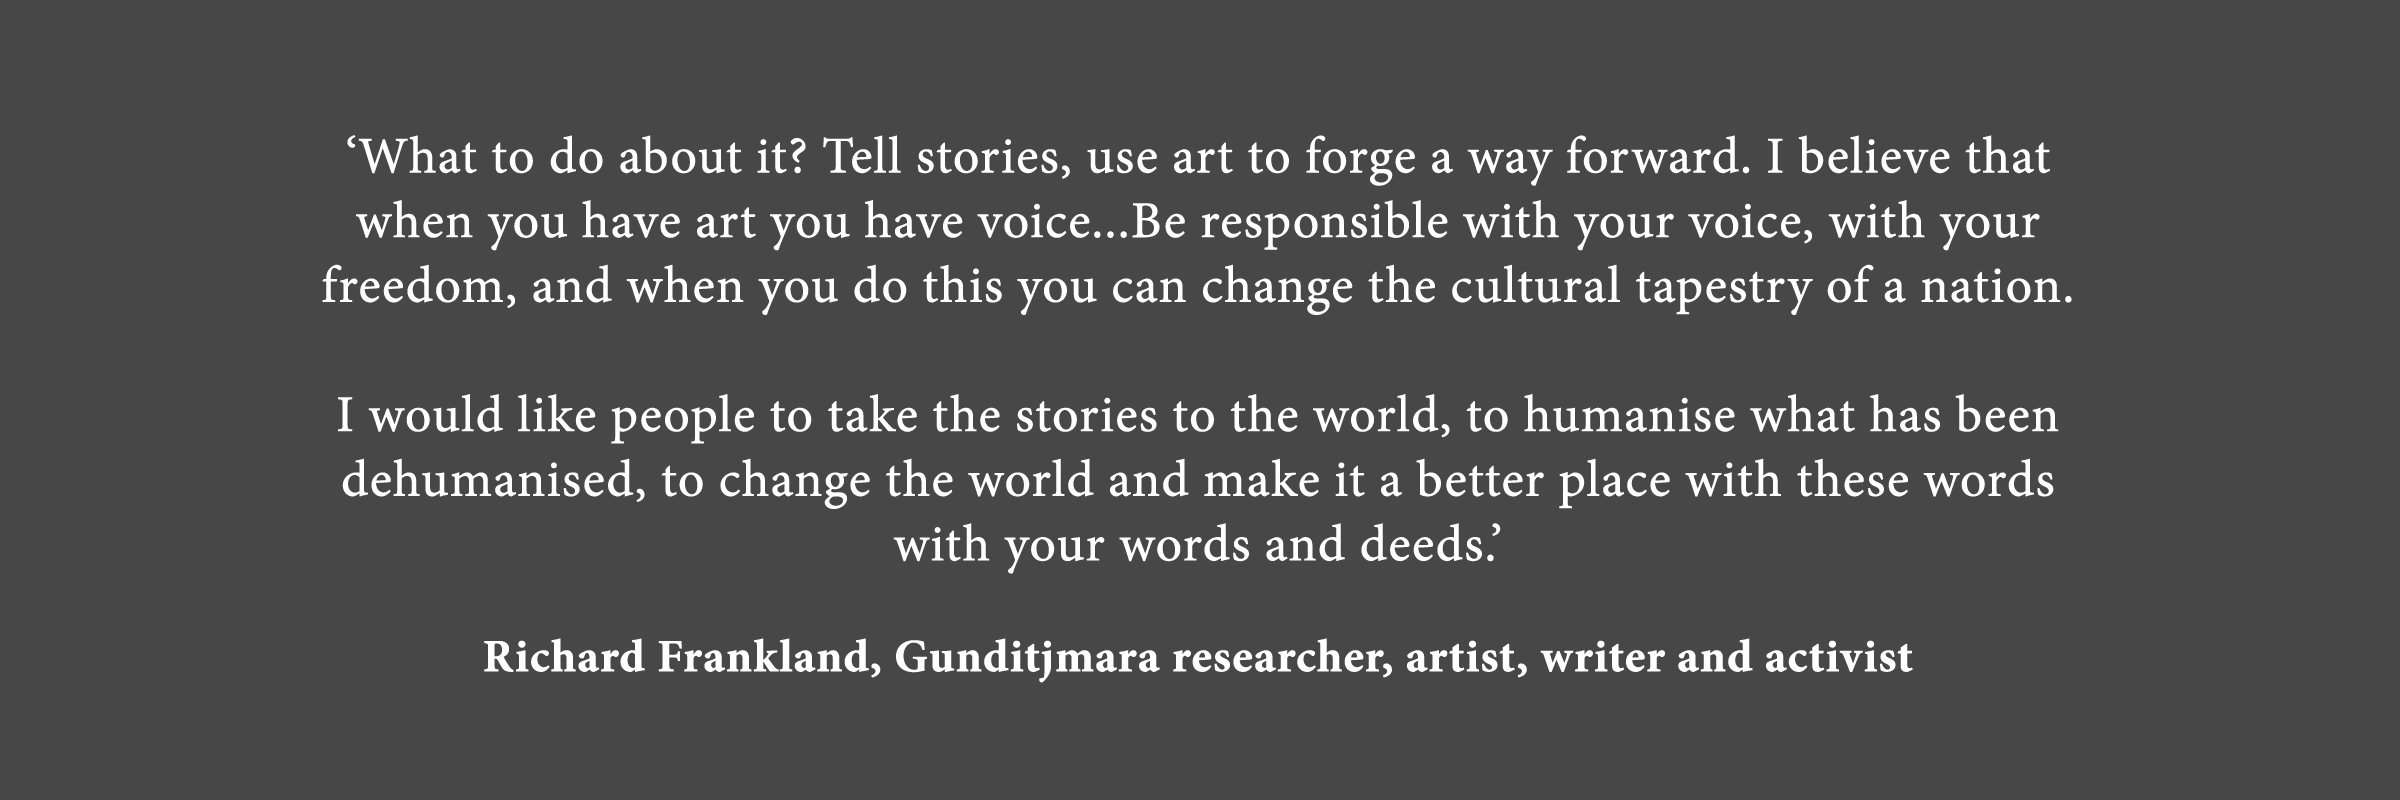 Text based image featuring quote 'What to do about it? Tell stories, use art to forge a way forward. I believe that when you have art you have voice...Be responsible with your voice, with your freedom, and when you do this you can change the cultural tapestry of a nation. I would like people to take the stories to the world, to humanise what has been dehumanised, to change the world and make it a better place with these words with your words and deeds.' - Richard Frankland, Gunditjmara researcher, artist, writer and activist.